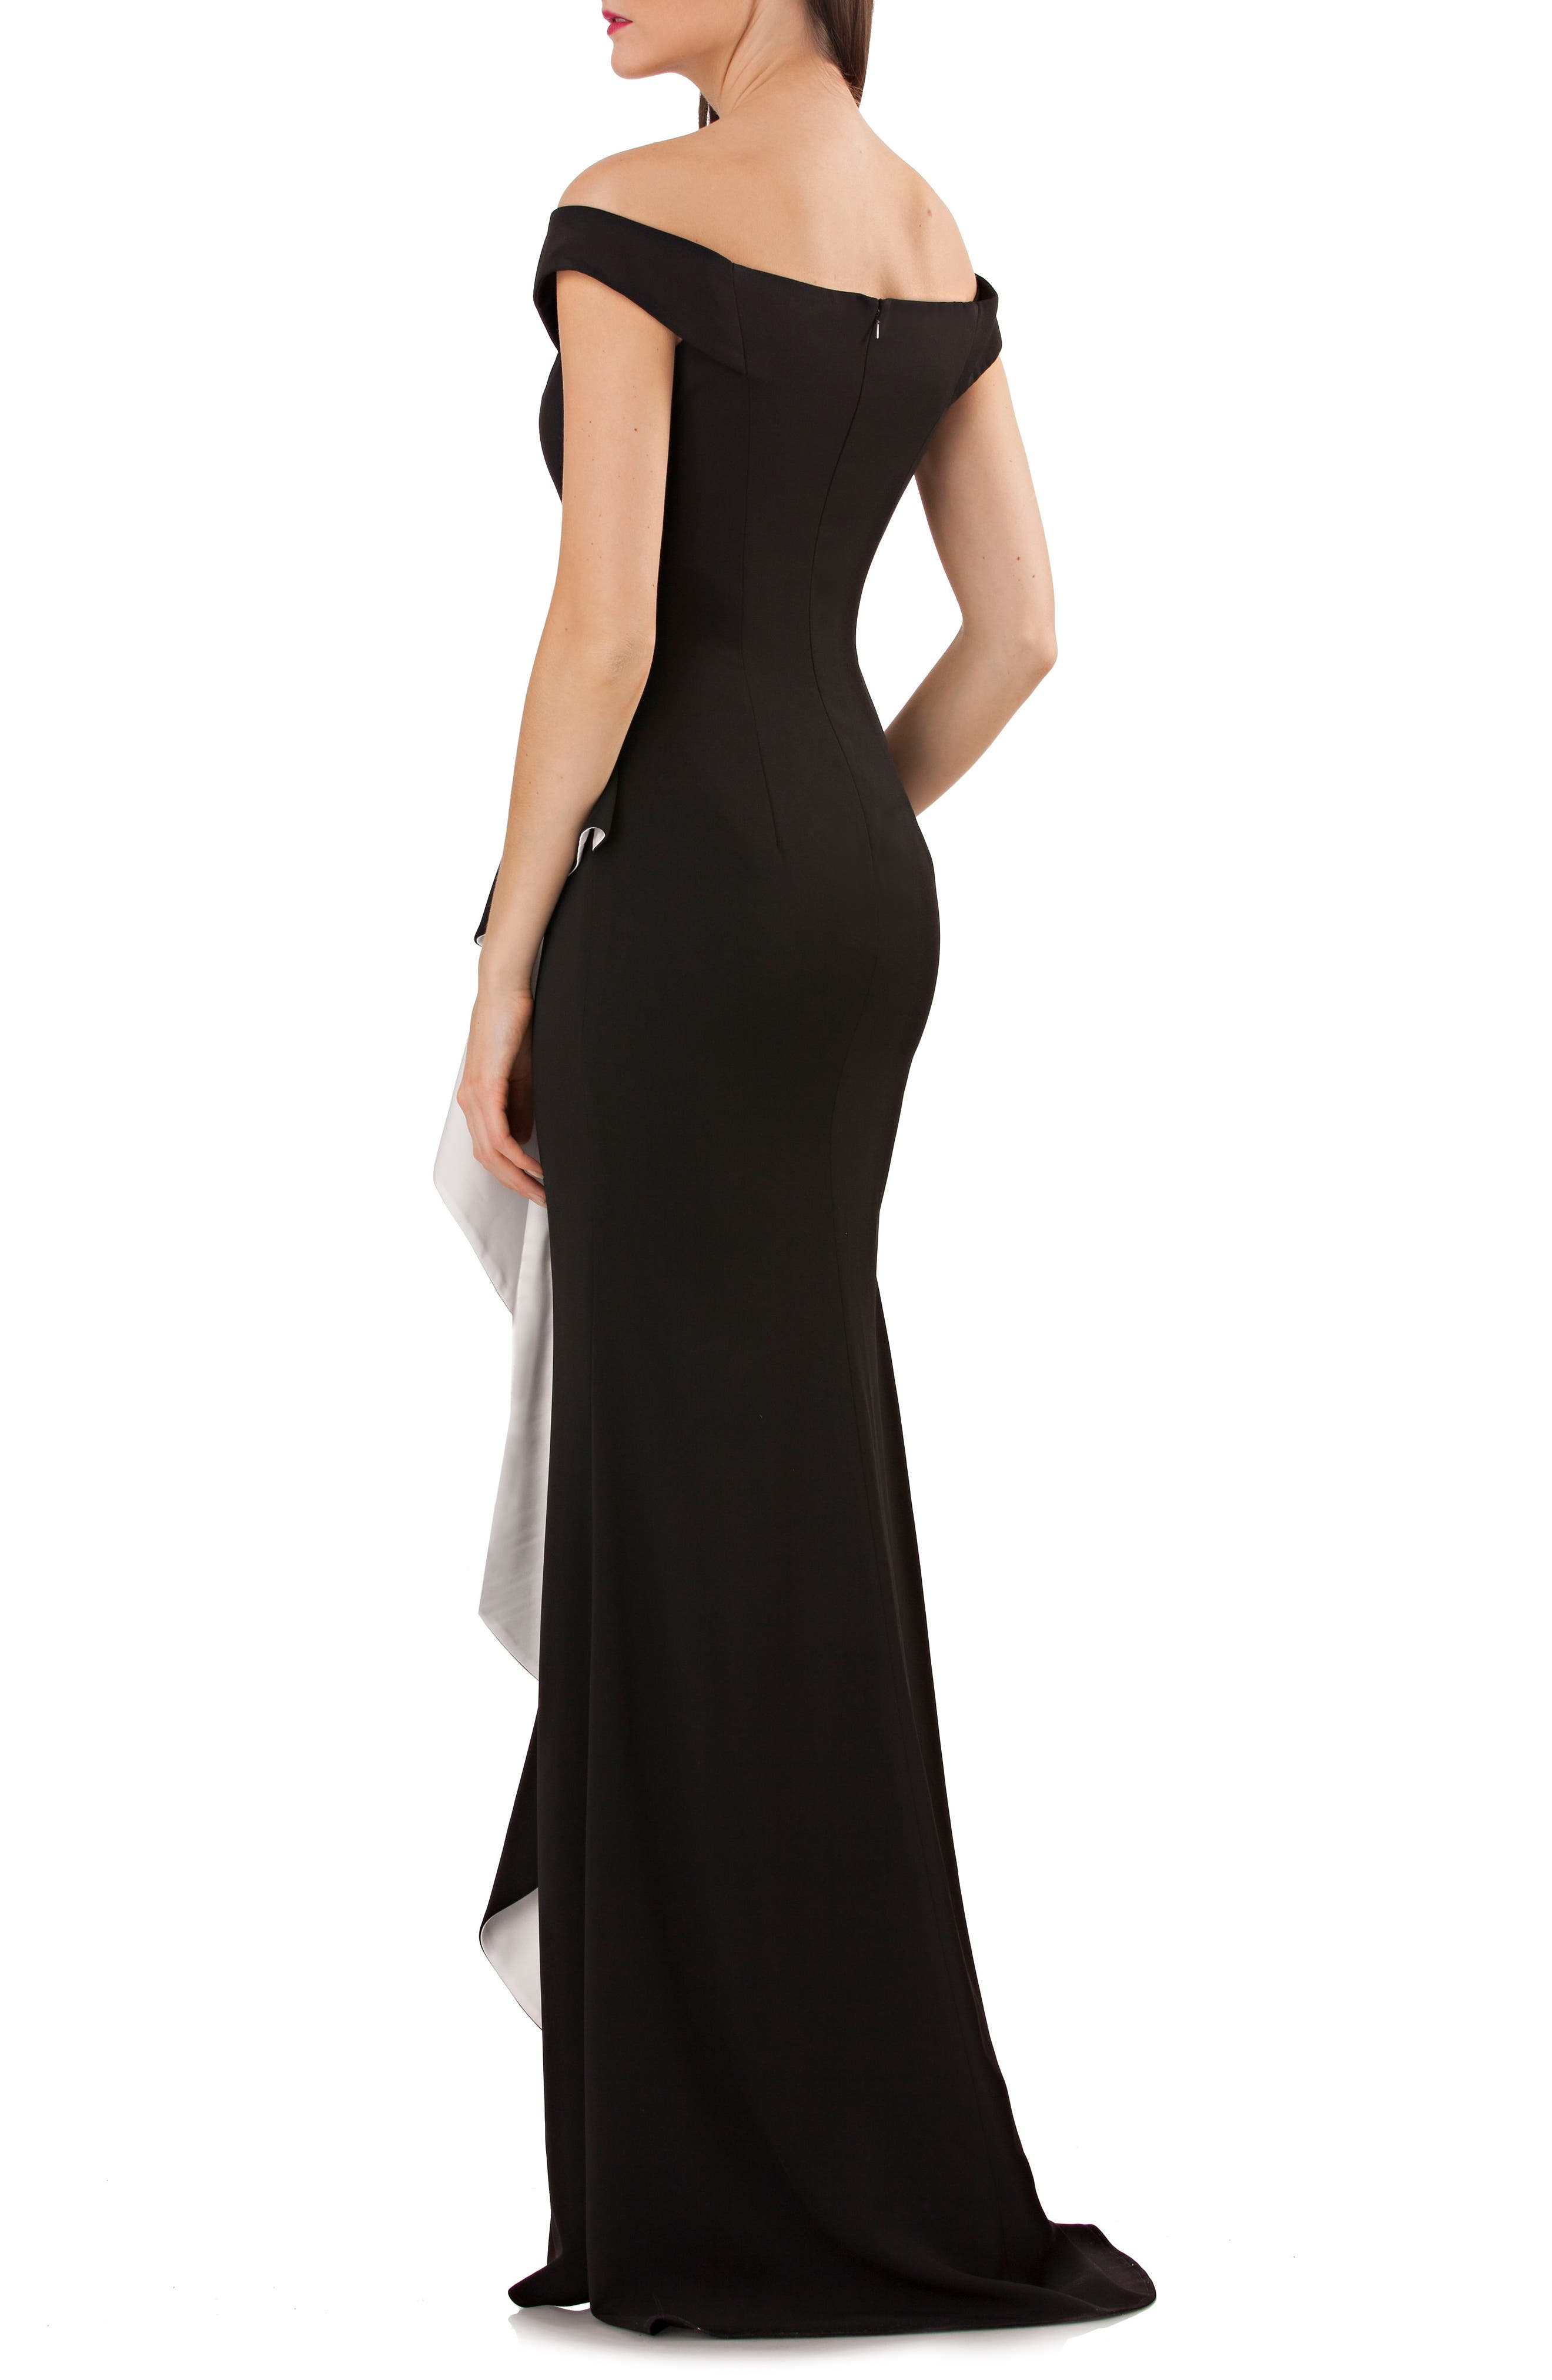 Ruffle Off the Shoulder Gown,                             Alternate thumbnail 2, color,                             Black/ White